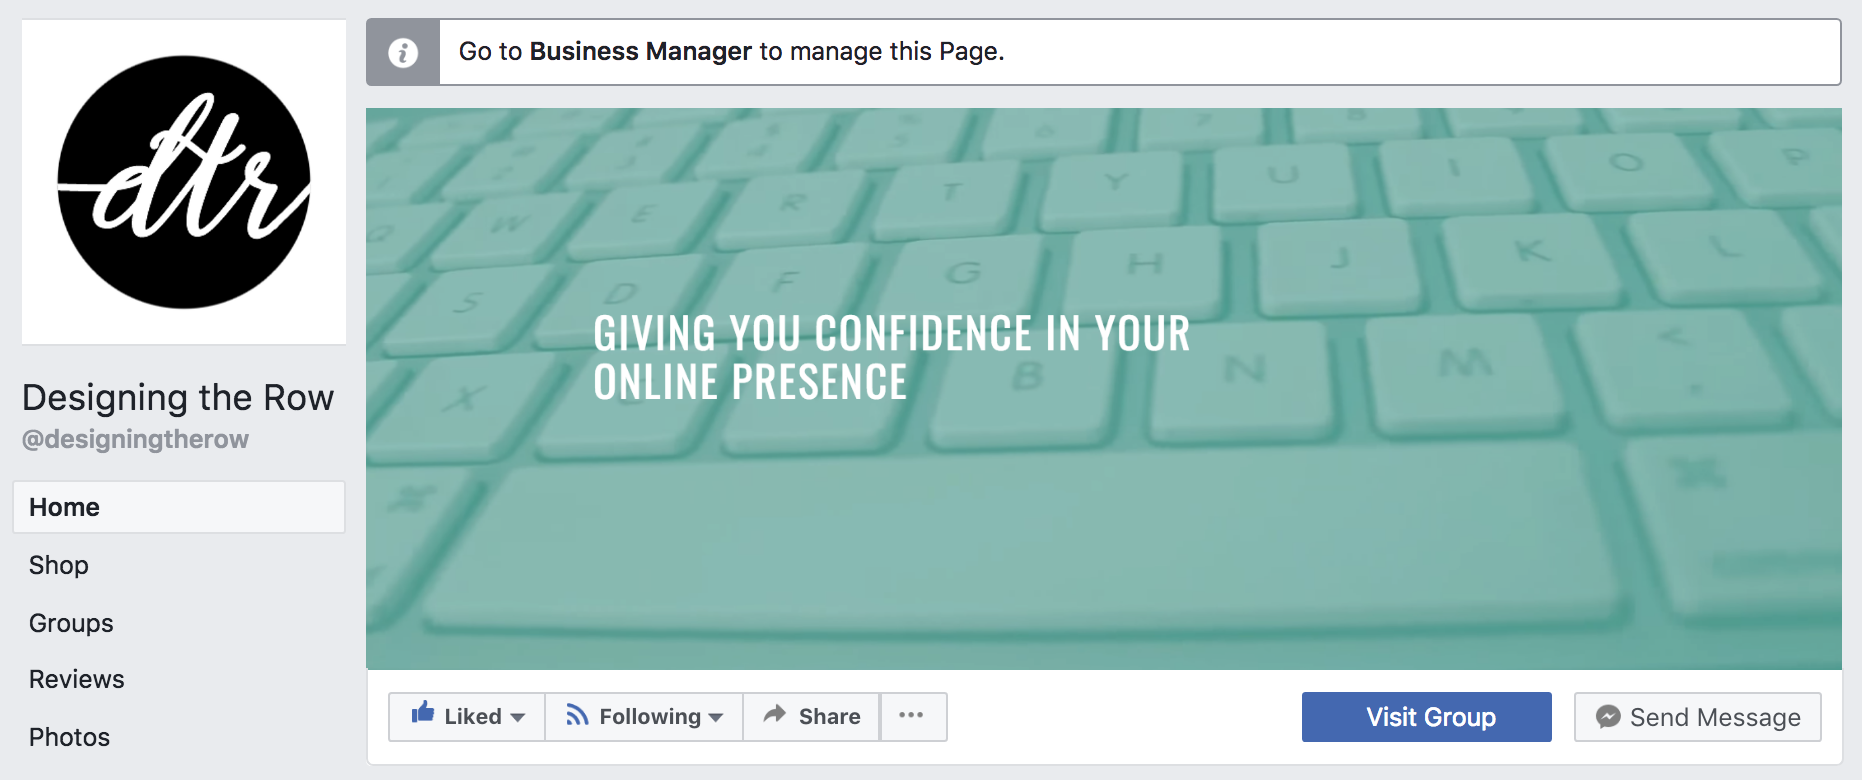 Business Manager Facebook Page